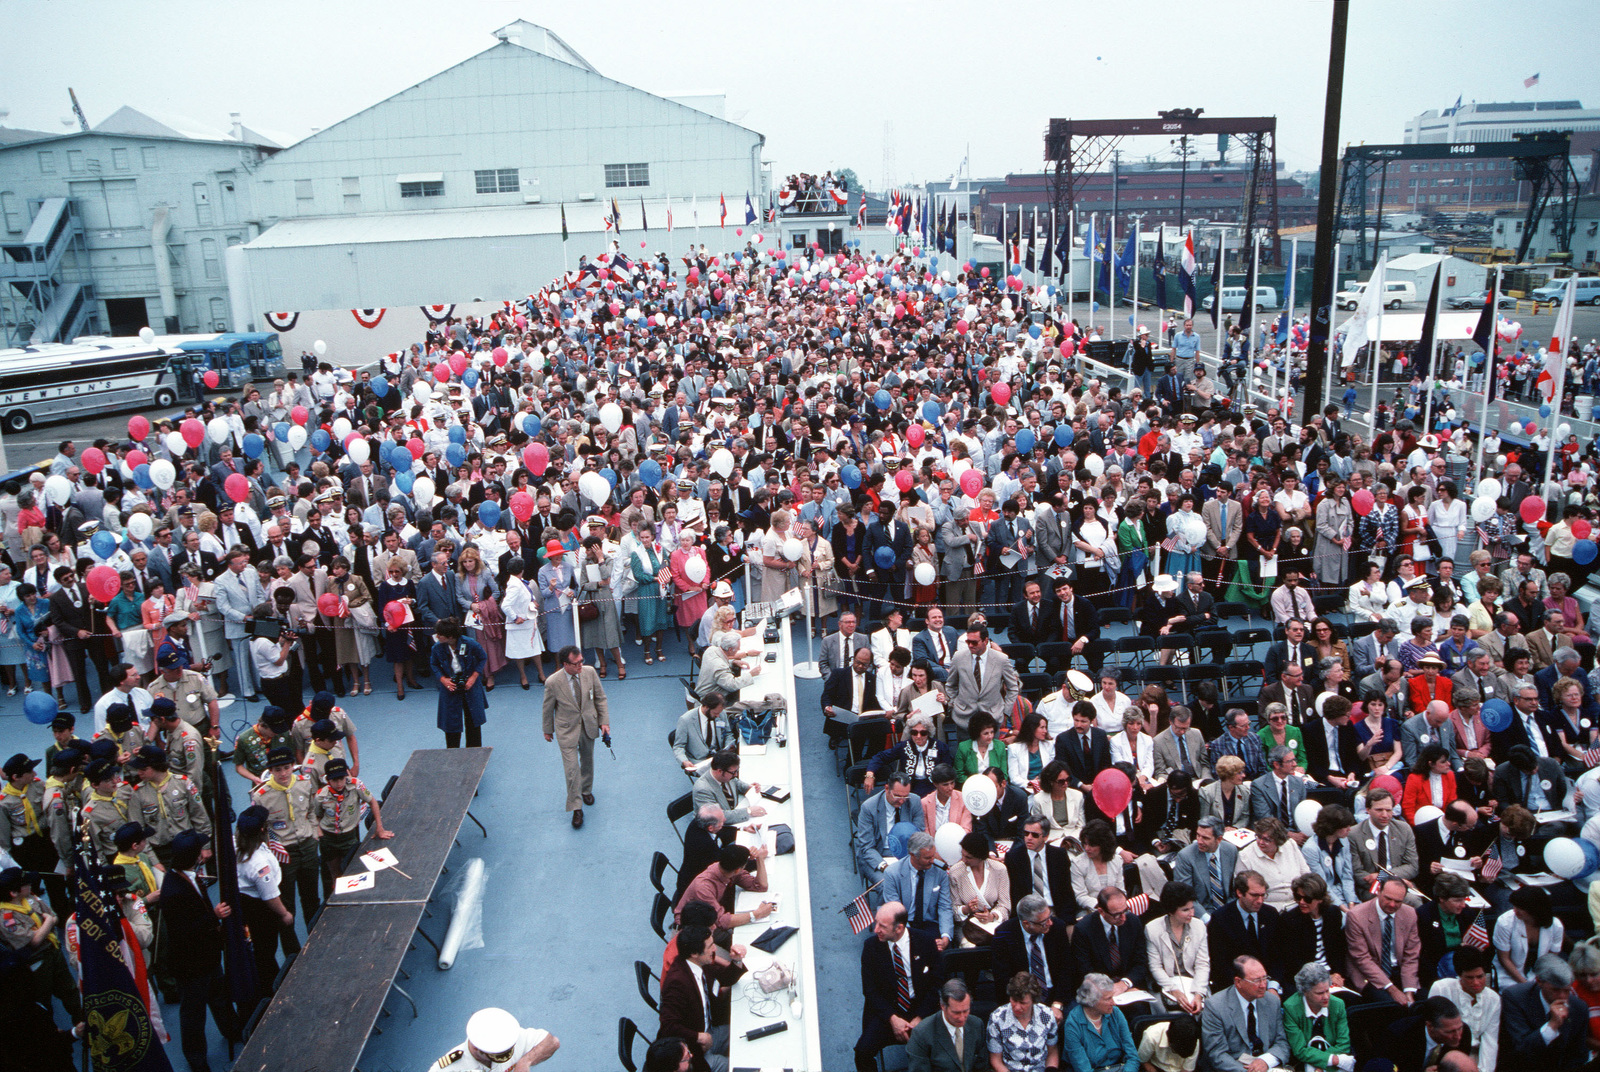 A view of the crowd attending the launching ceremony for the nuclear-powered attack submarine USS BUFFALO (SSN-715)